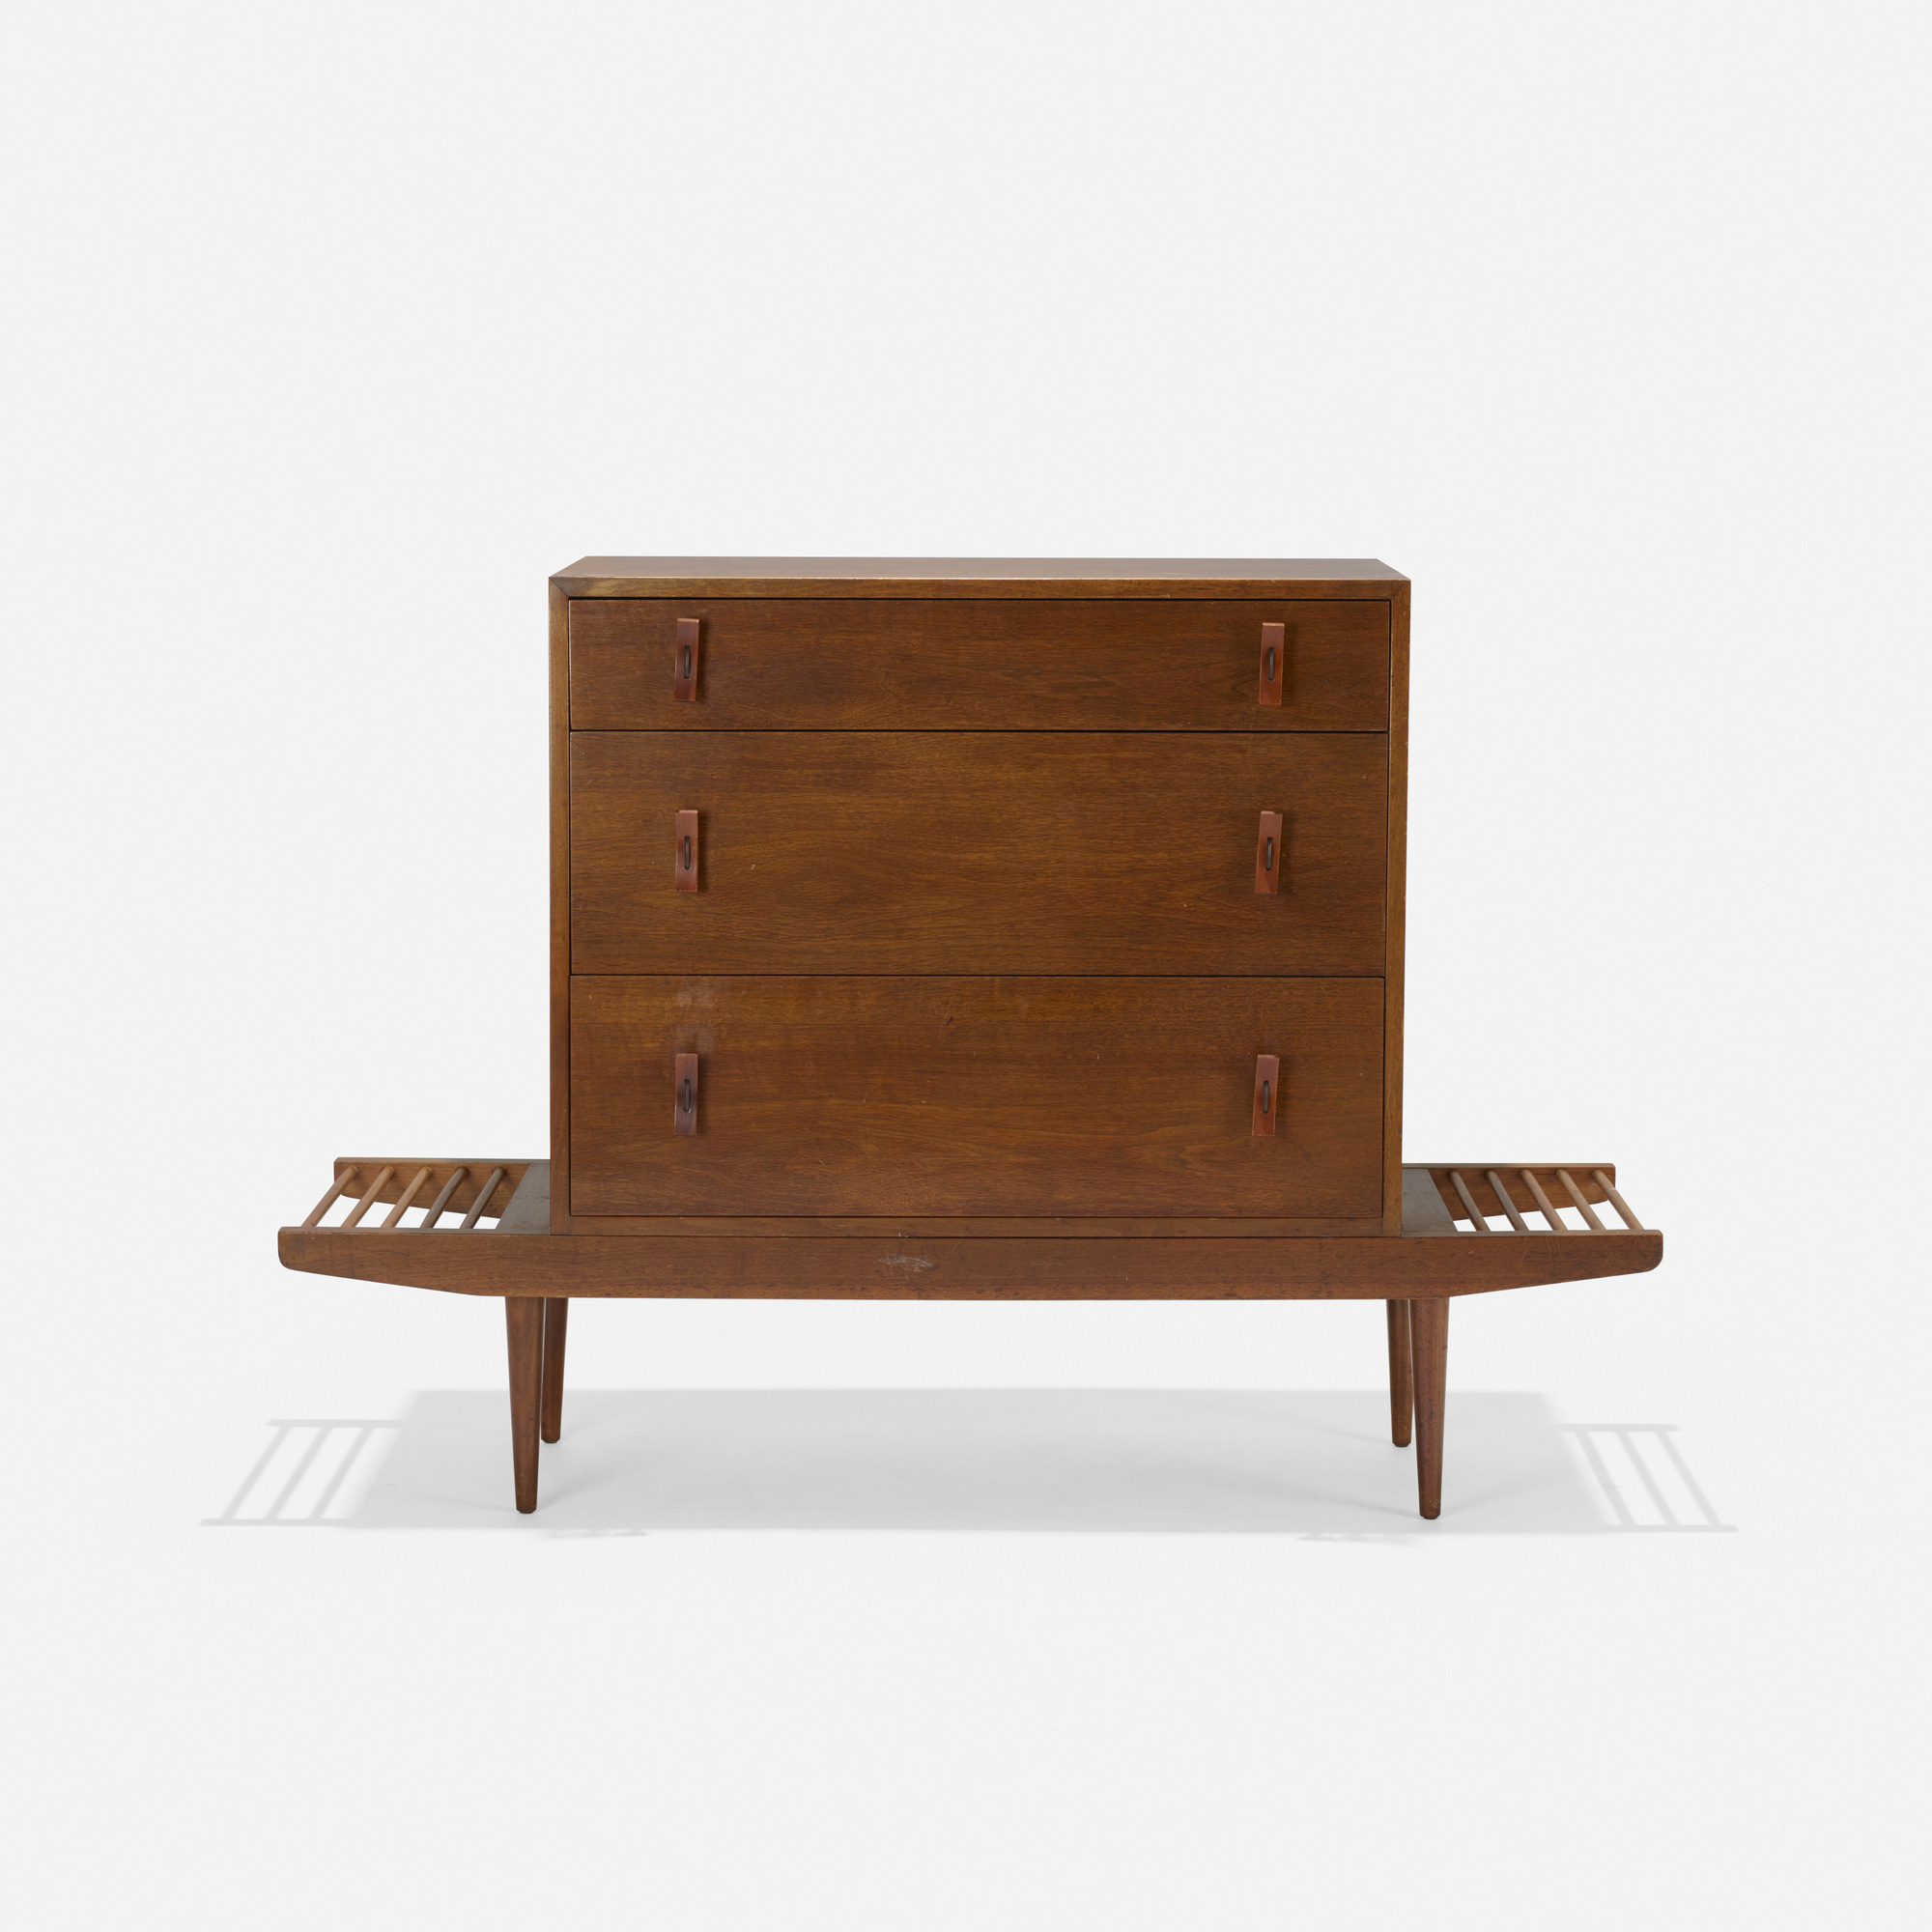 143: Milo Baughman and Stanley Young / bench with cabinet (2 of 3)